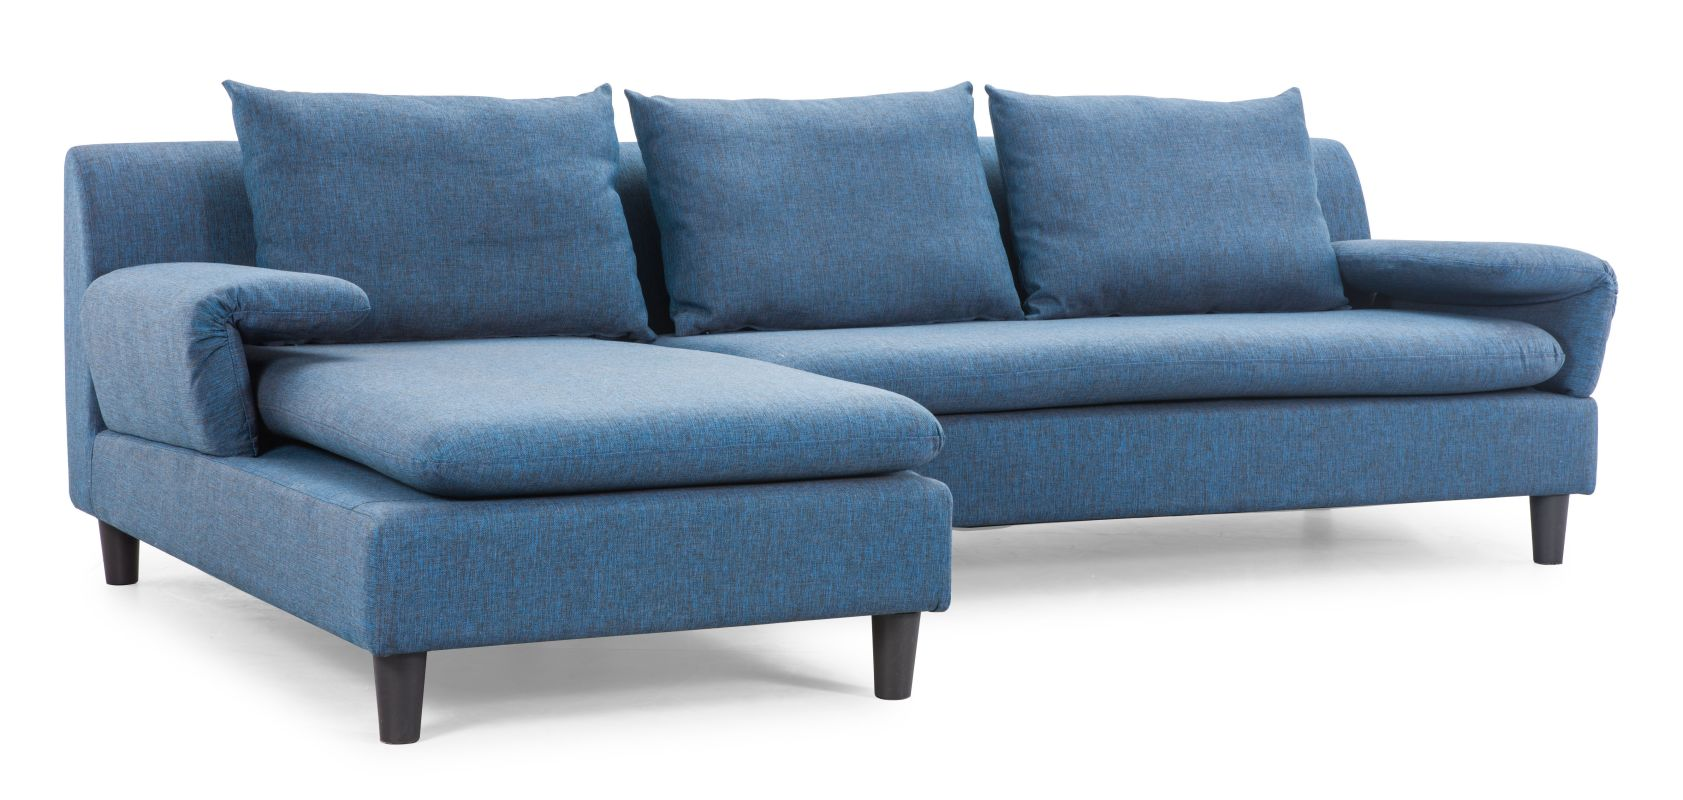 Zuo Modern Axiom Sectional Axiom Sectional Cowboy Blue Furniture Sofas